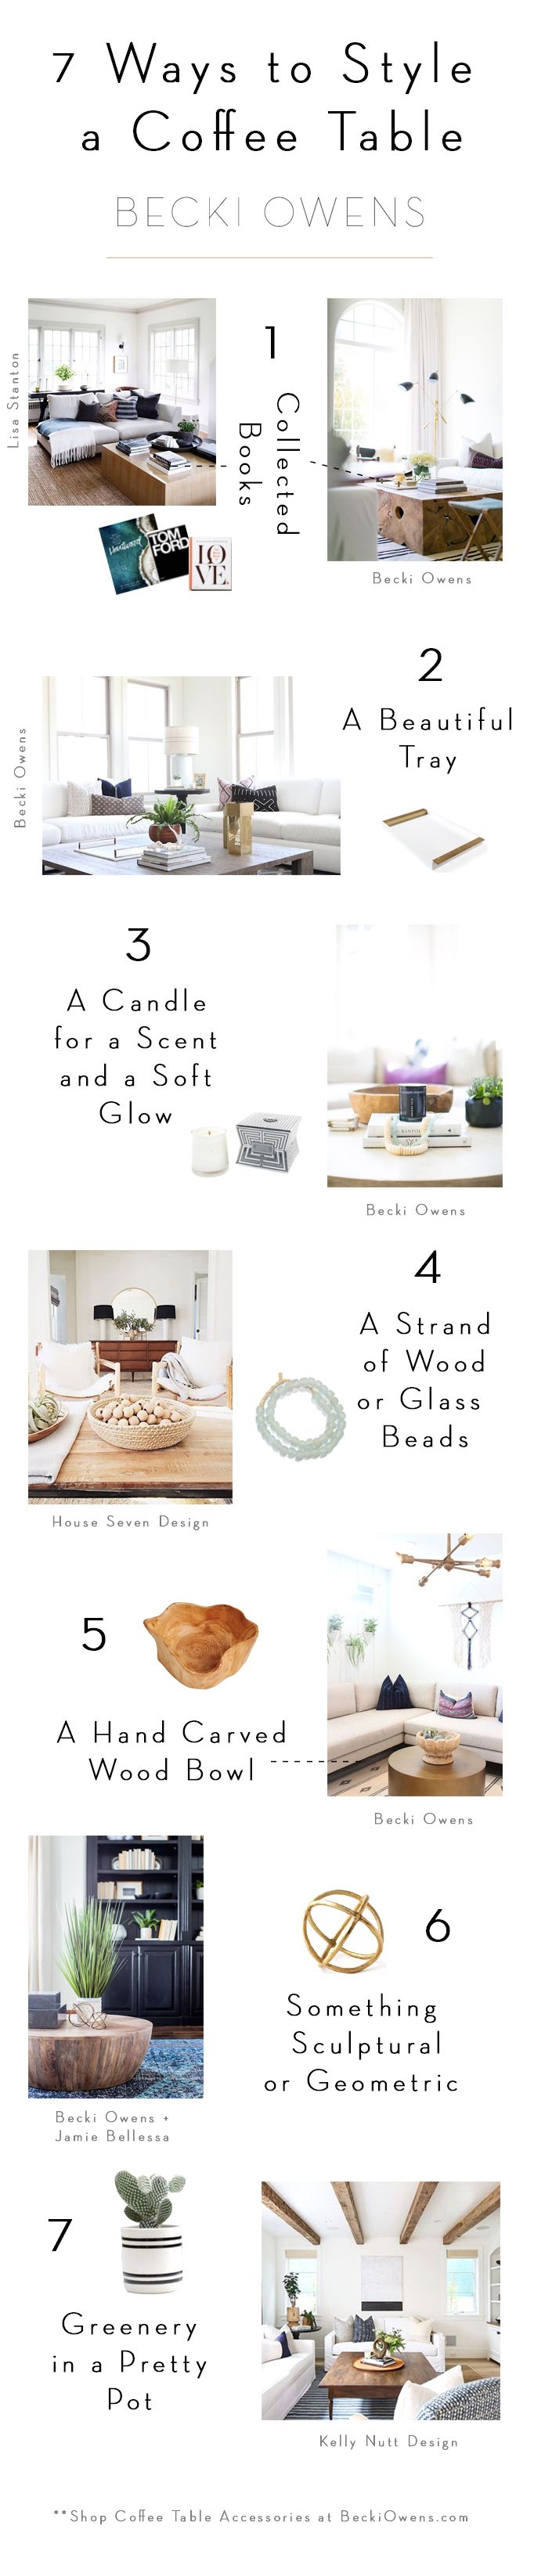 7 Ways to Style a Coffee TableBECKI OWENS-Restyling your coffee table is an easy way to refresh your living room. Here are 7 ways to style your table with a curated collection of things you love.